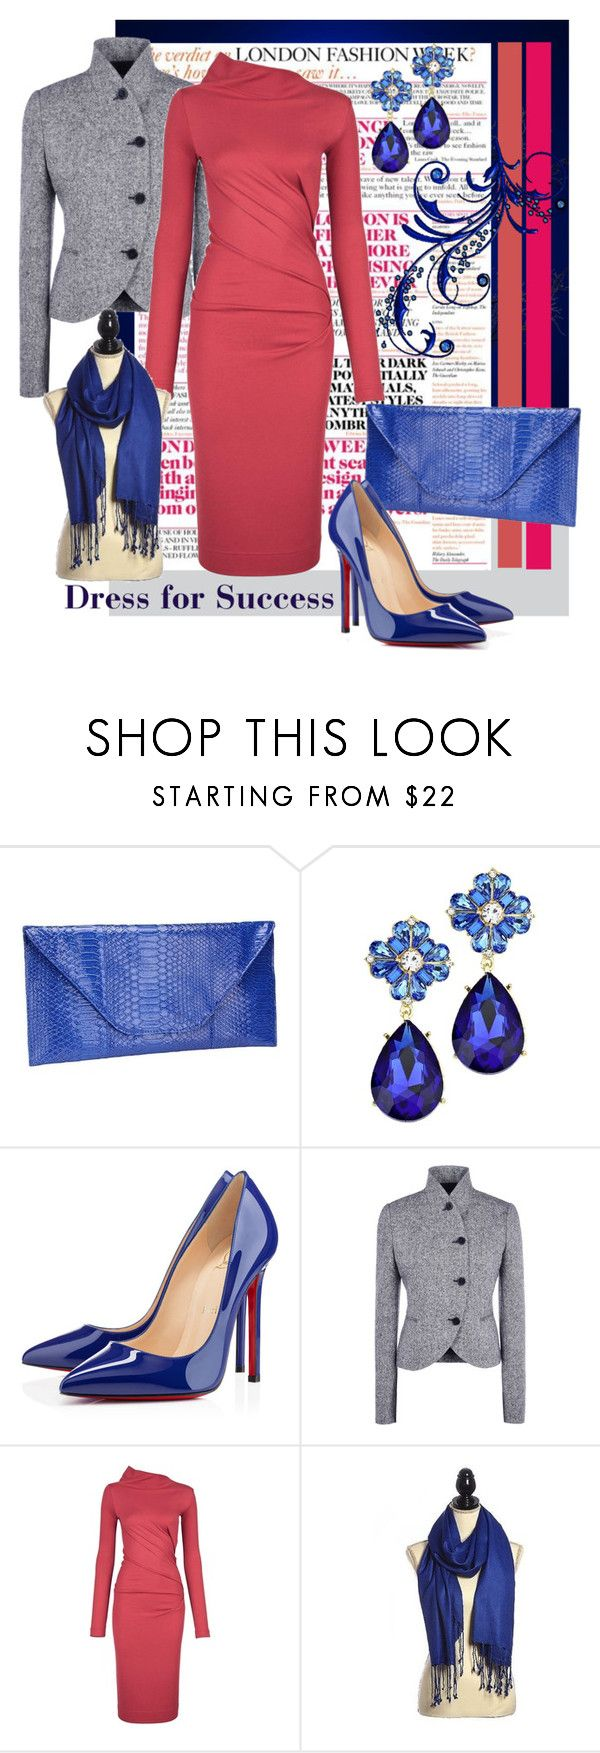 """""""Dress for Success"""" by shoppe23online ❤ liked on Polyvore featuring Christian Louboutin, STELLA McCARTNEY, Vivienne Westwood Anglomania, women's clothing, women's fashion, women, female, woman, misses and juniors"""